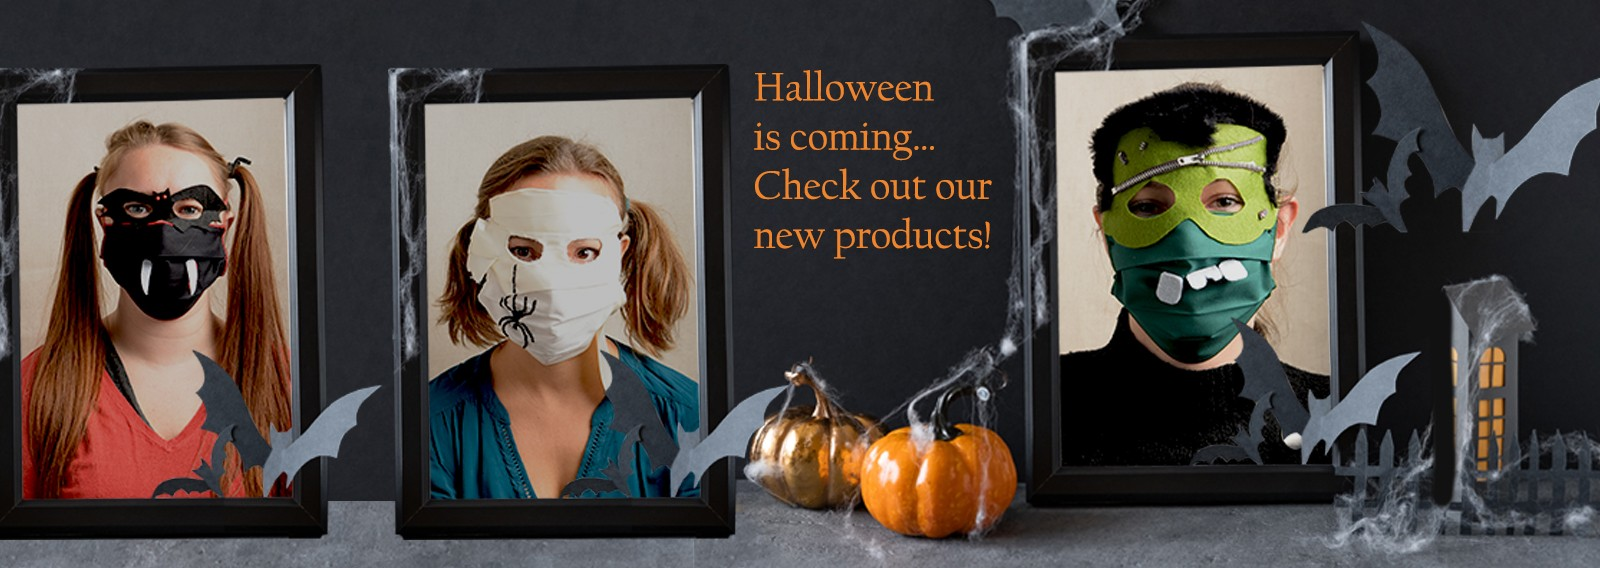 Halloween is coming… Check out our new products!